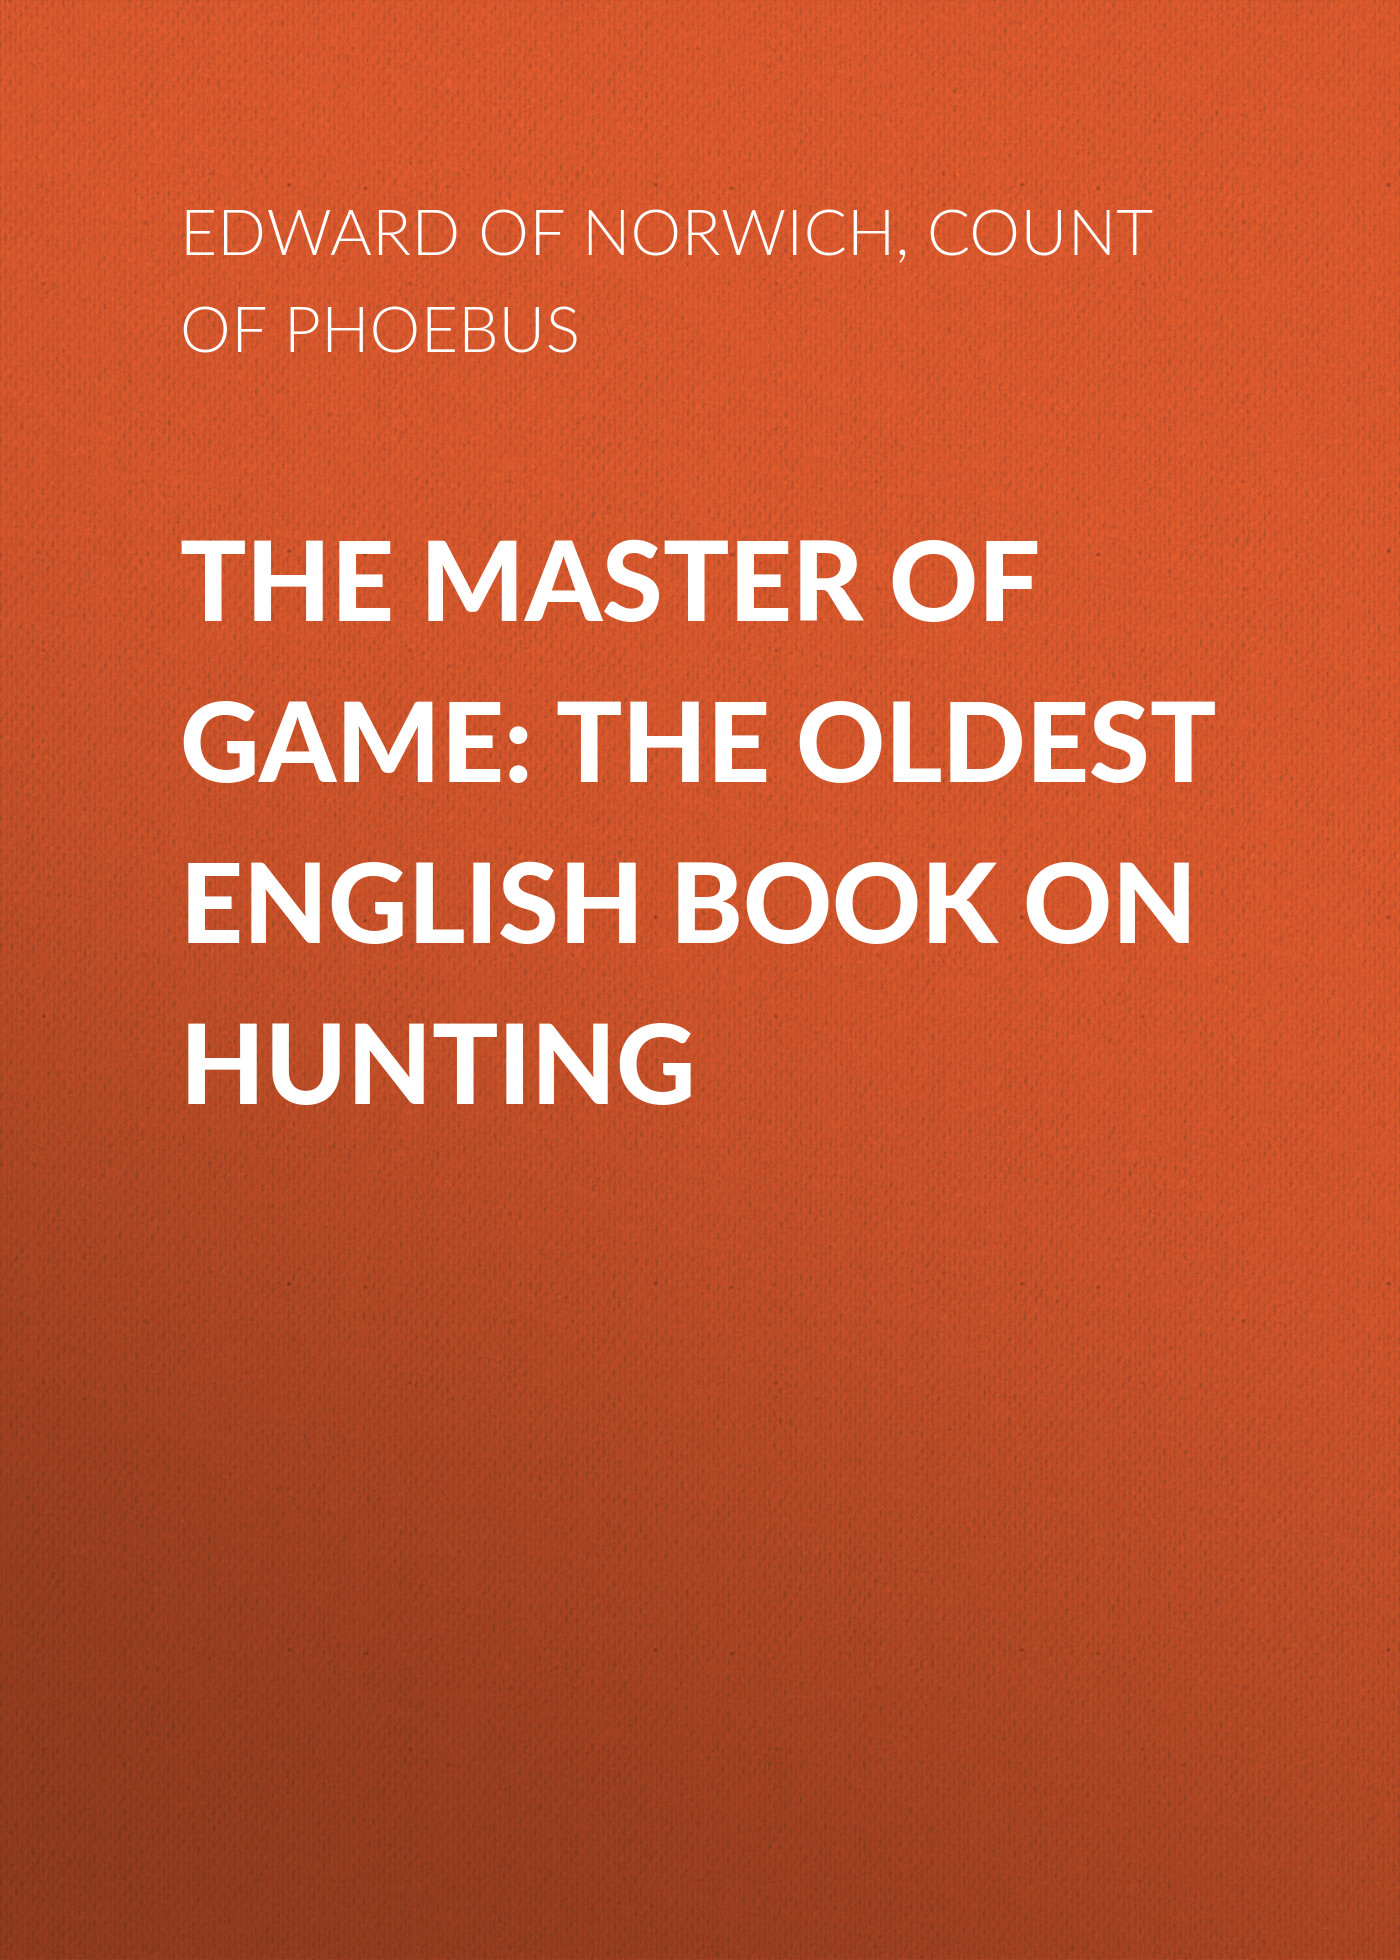 Edward of Norwich The Master of Game: The Oldest English Book on Hunting ben folds norwich page 8